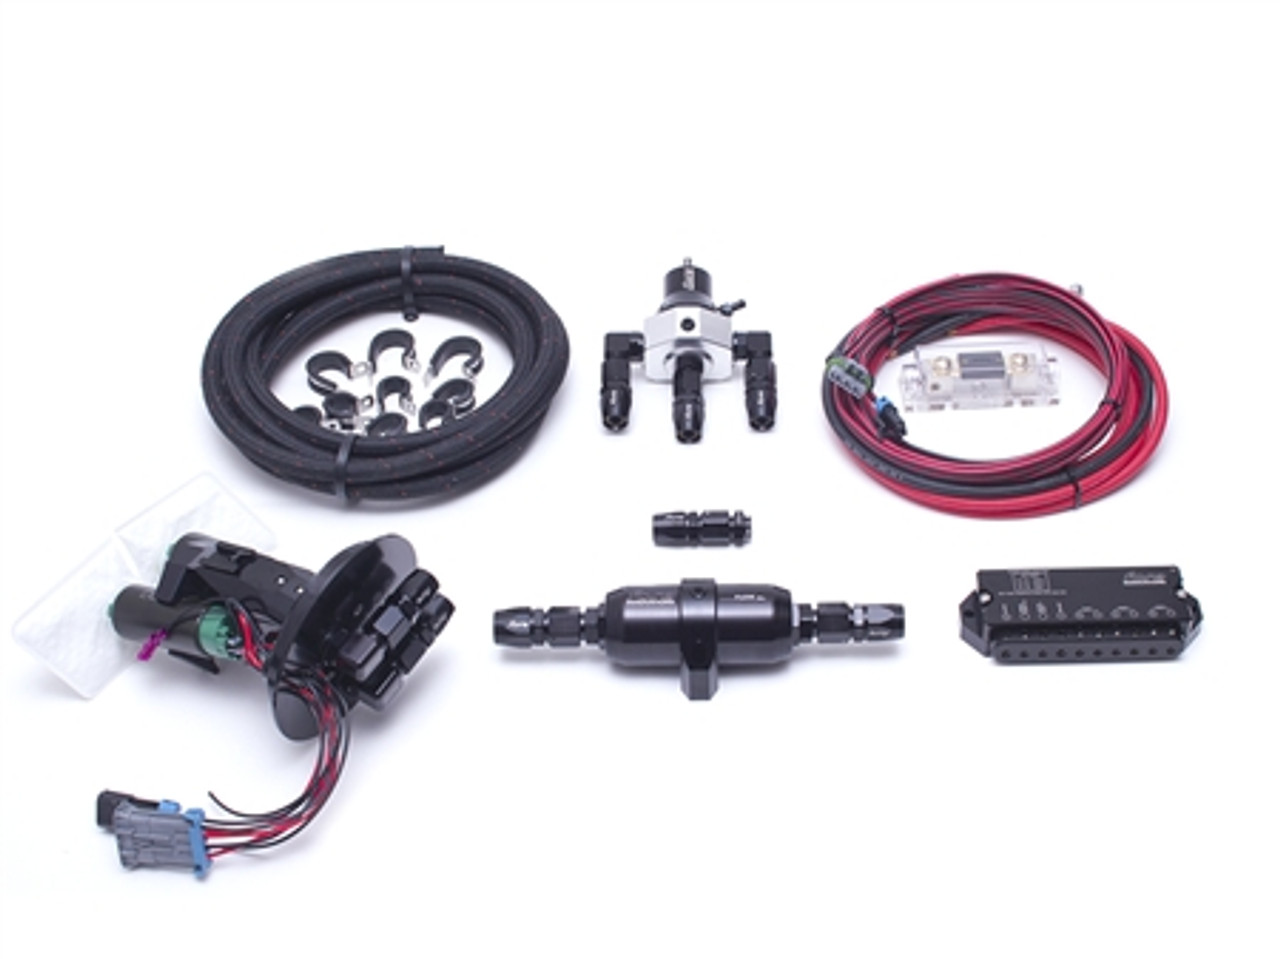 BCR Budget E85 Fuel System 900hp (11-17 Mustang)